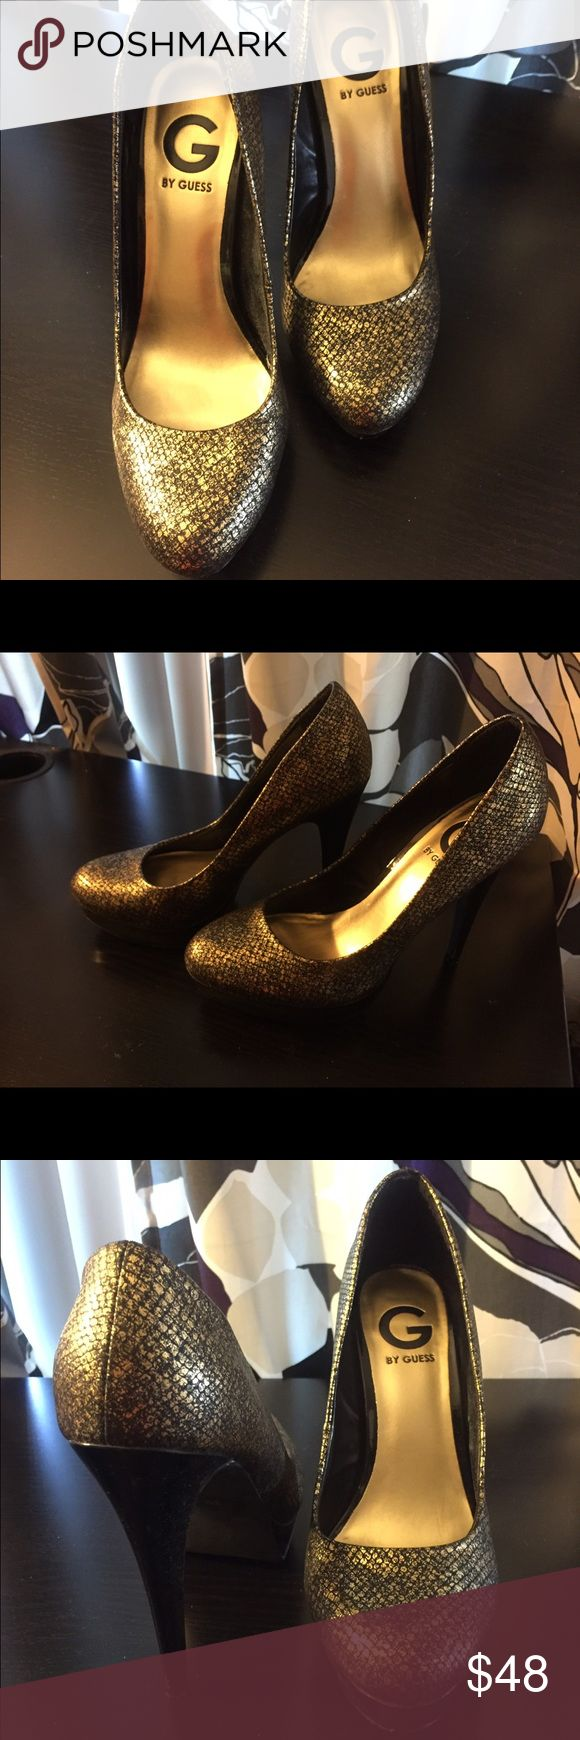 Black and Gold Pumps G by guess, black and gold heels, 3 inches, super cute with jeans or skiers/dresses. True to size. 8M G by Guess Shoes Heels